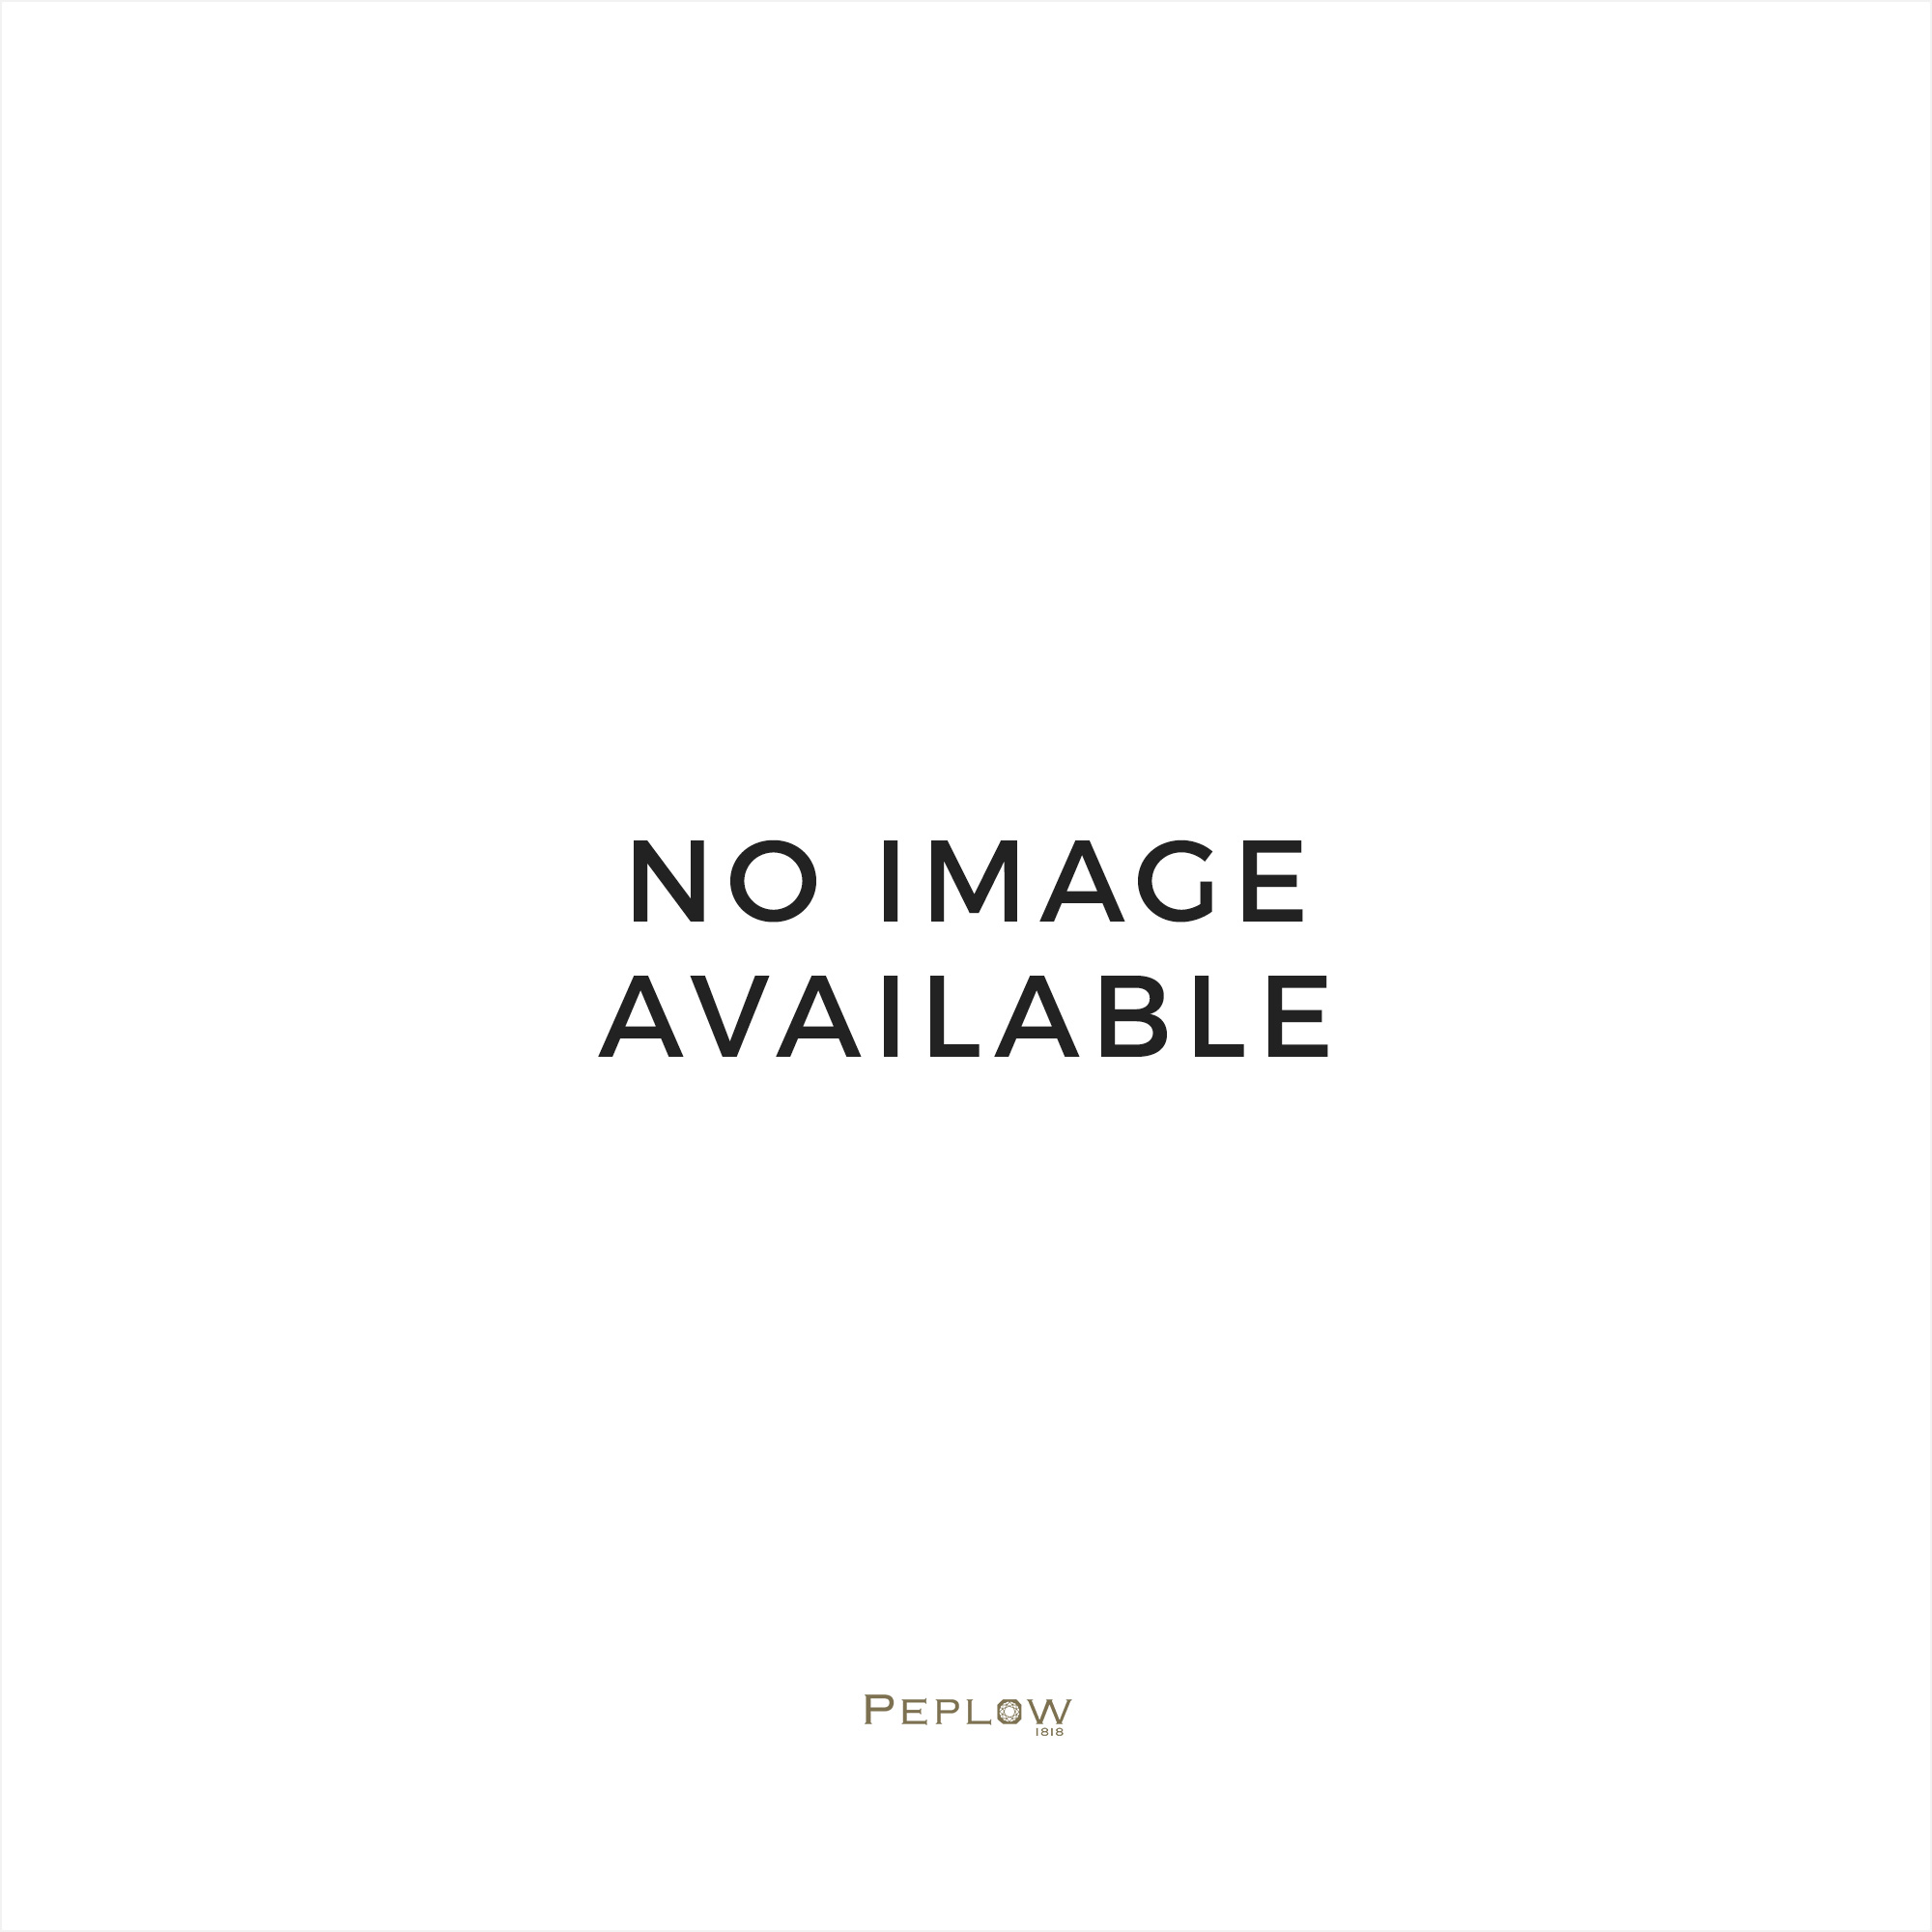 Chidrens time teacher model with football logo. RG247KX9